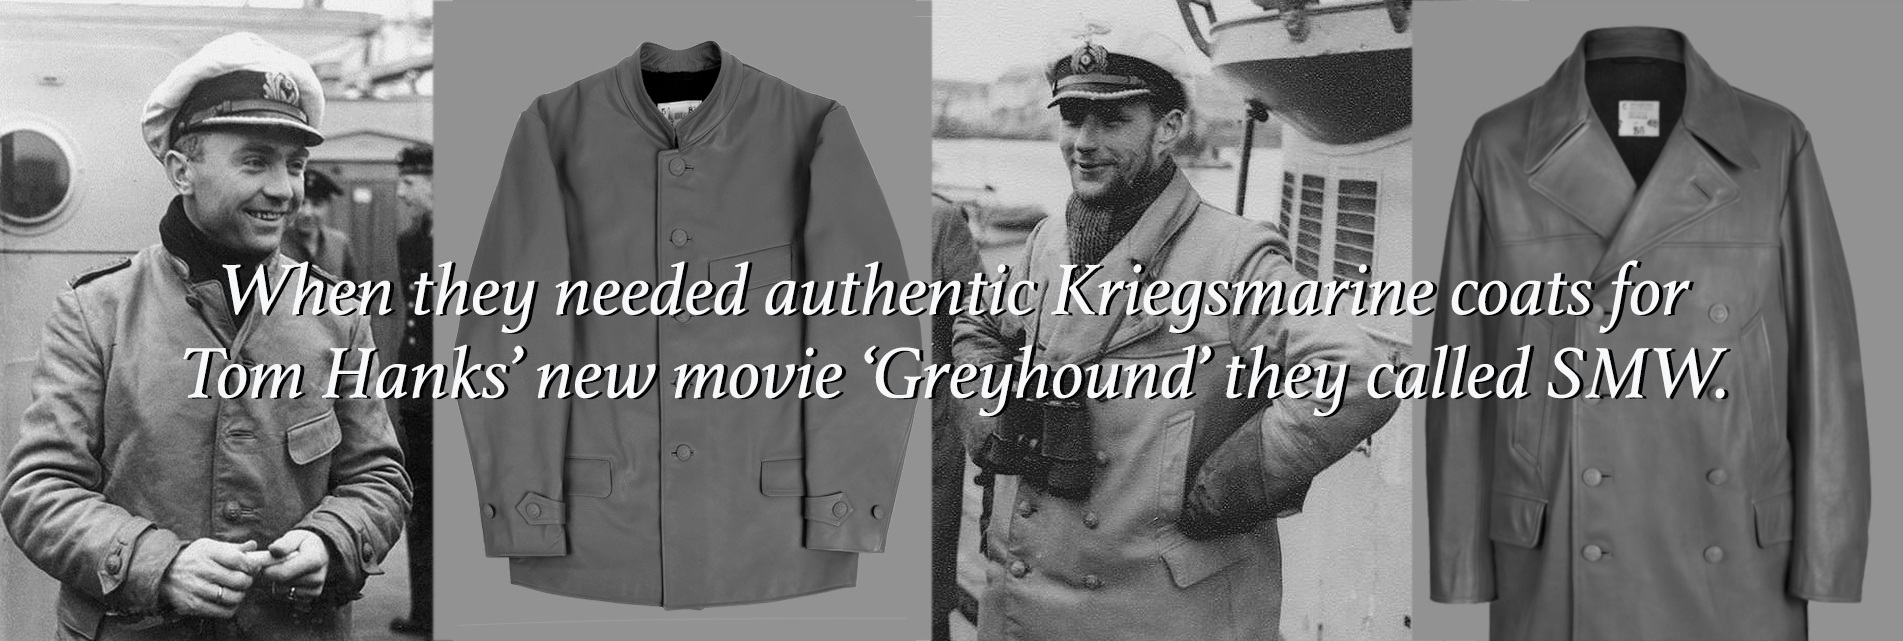 "WWII German Kriegsmarine jackets made by SMW for the upcoming Tom Hank's movie ""Greyhound""."